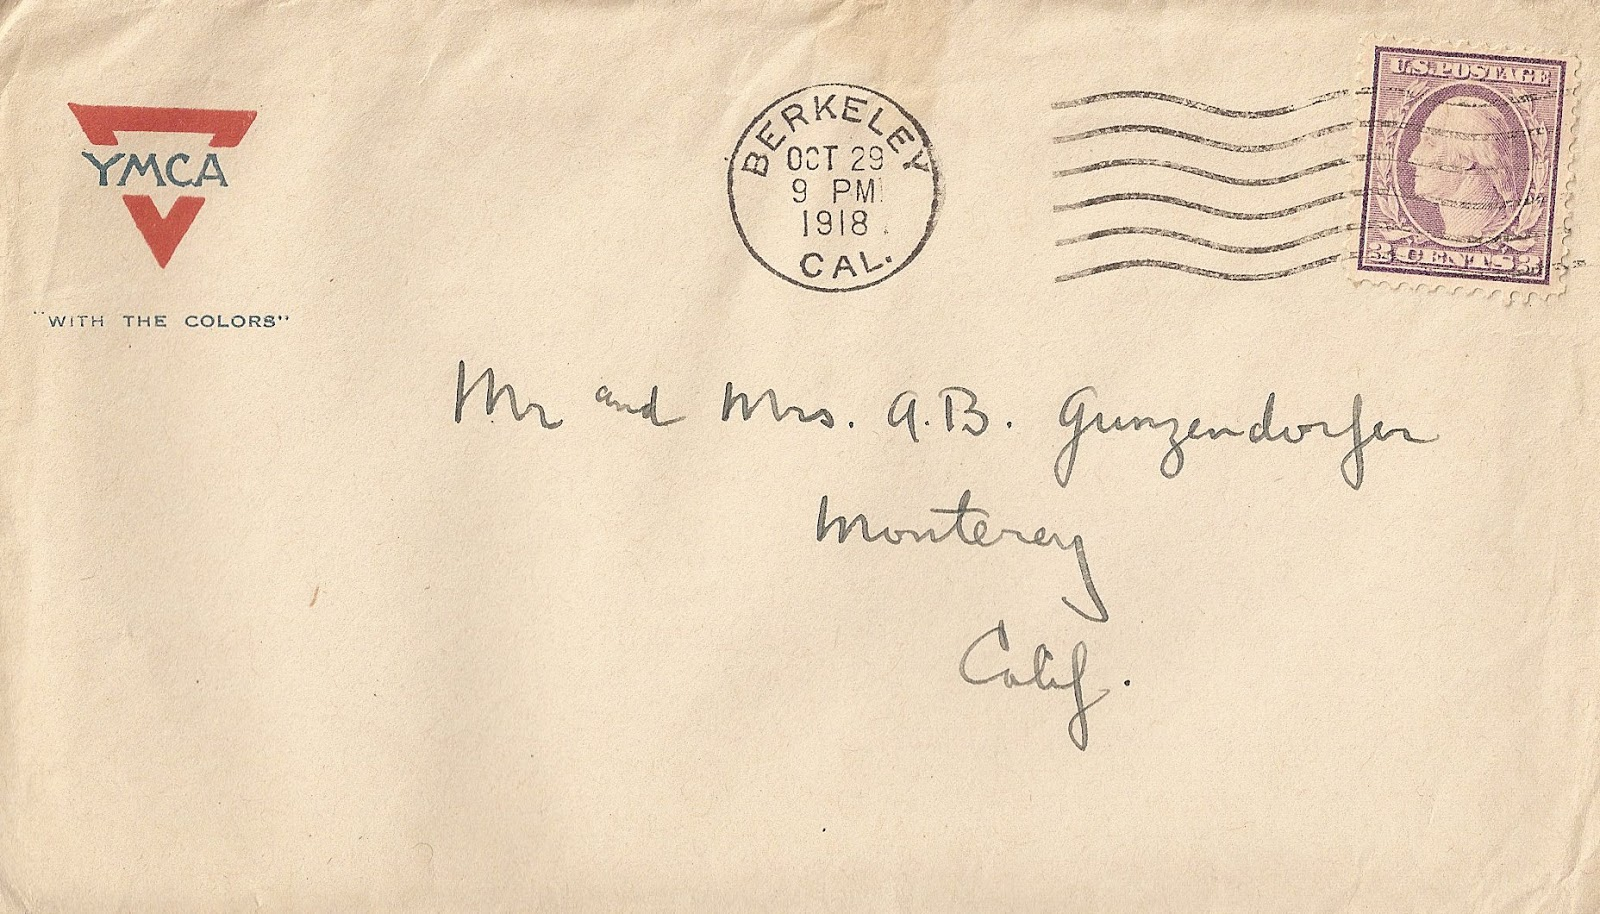 How To Address An Envelope Mr And Mrs Mr. and mrs. a.b. gunzendorfer